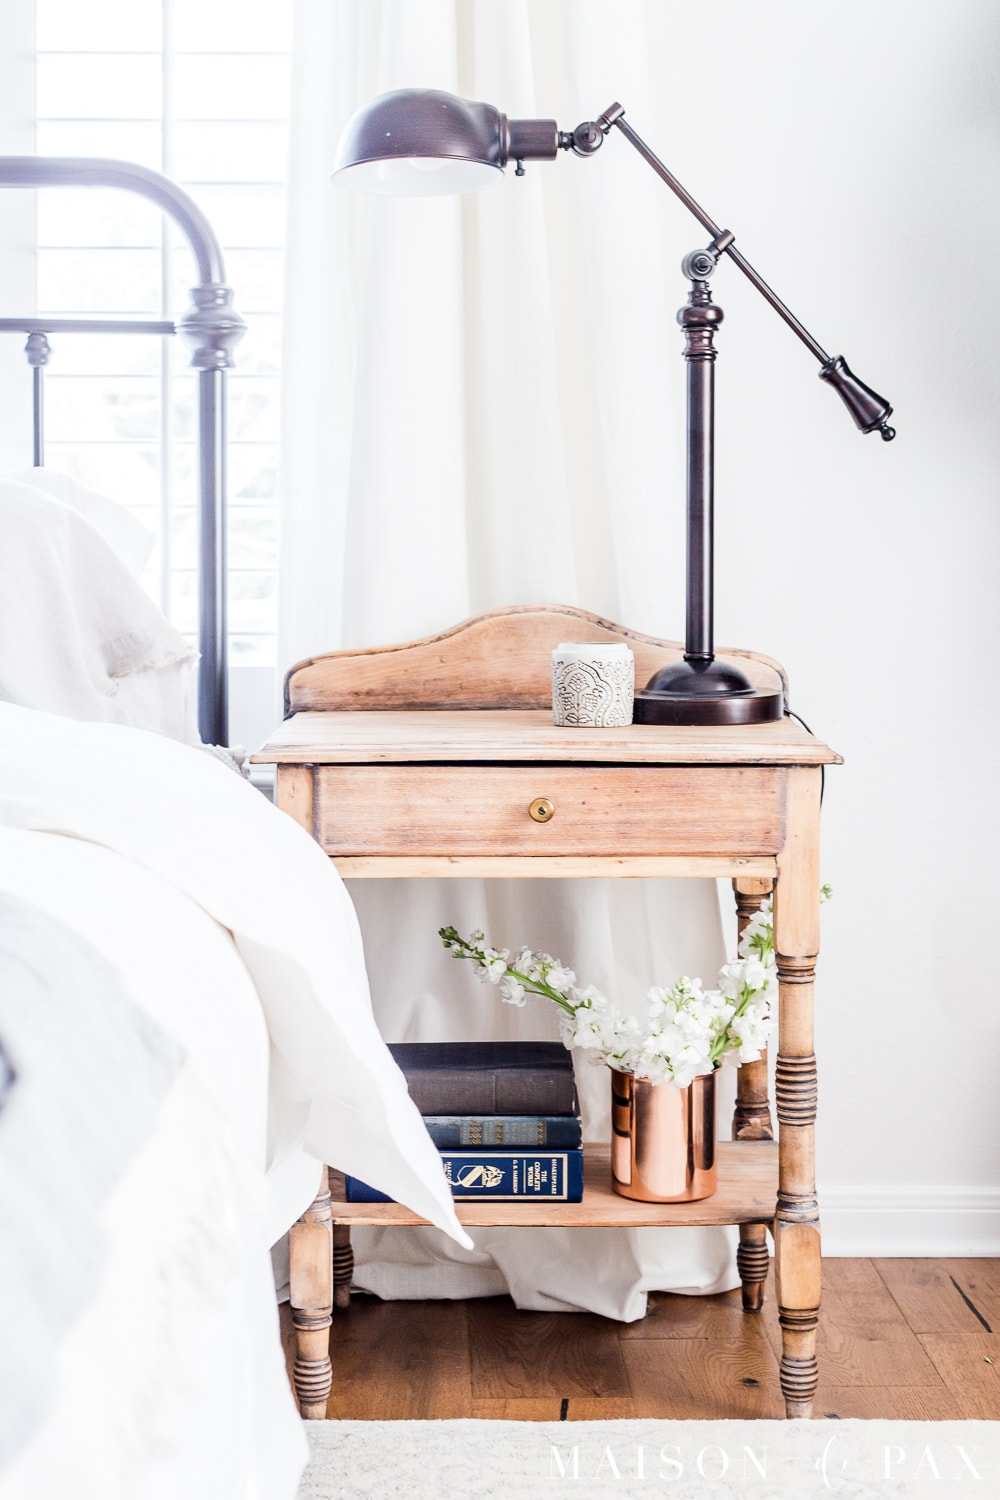 tip #5: add cut flowers in unexpected places... Looking to add a seasonal touch to your bedroom?  Don't miss these incredibly simple master bedroom decorating ideas for spring! #springdecor #springbedroom #nightstand #modernfarmhouse